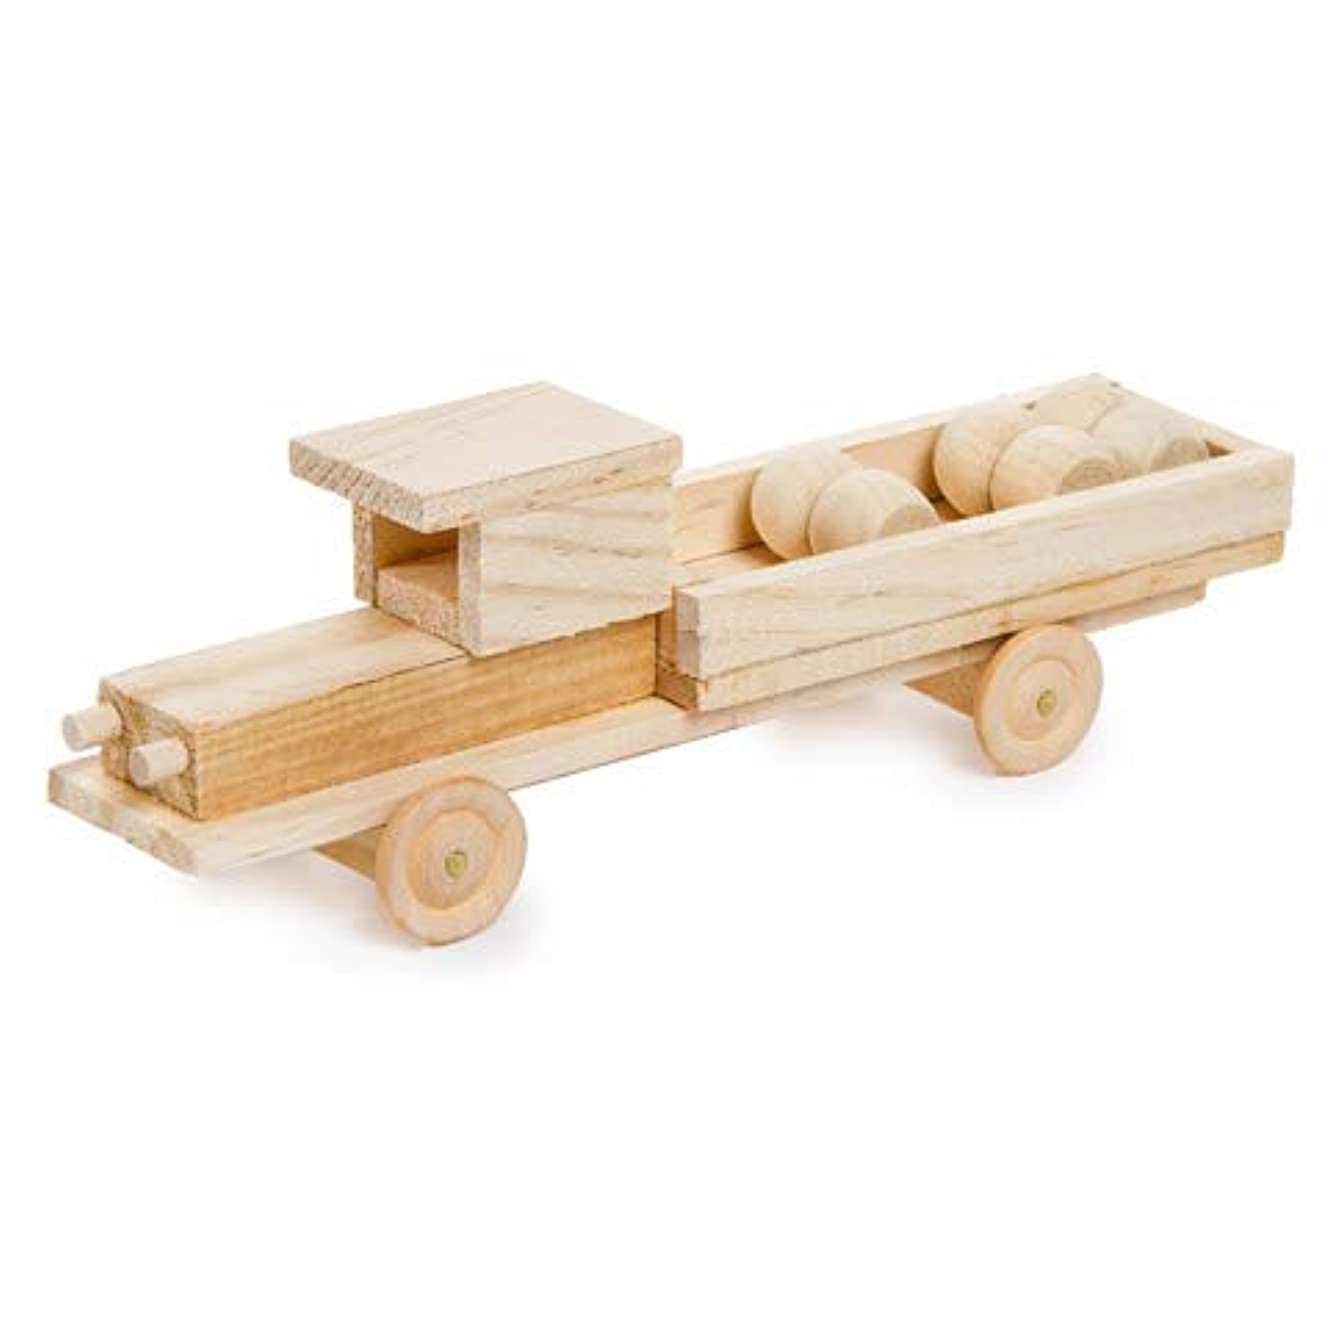 DIY Unfinished Wood Model Kit Pick Up Truck - 7-1/4 x 2-1/2 inches (1)